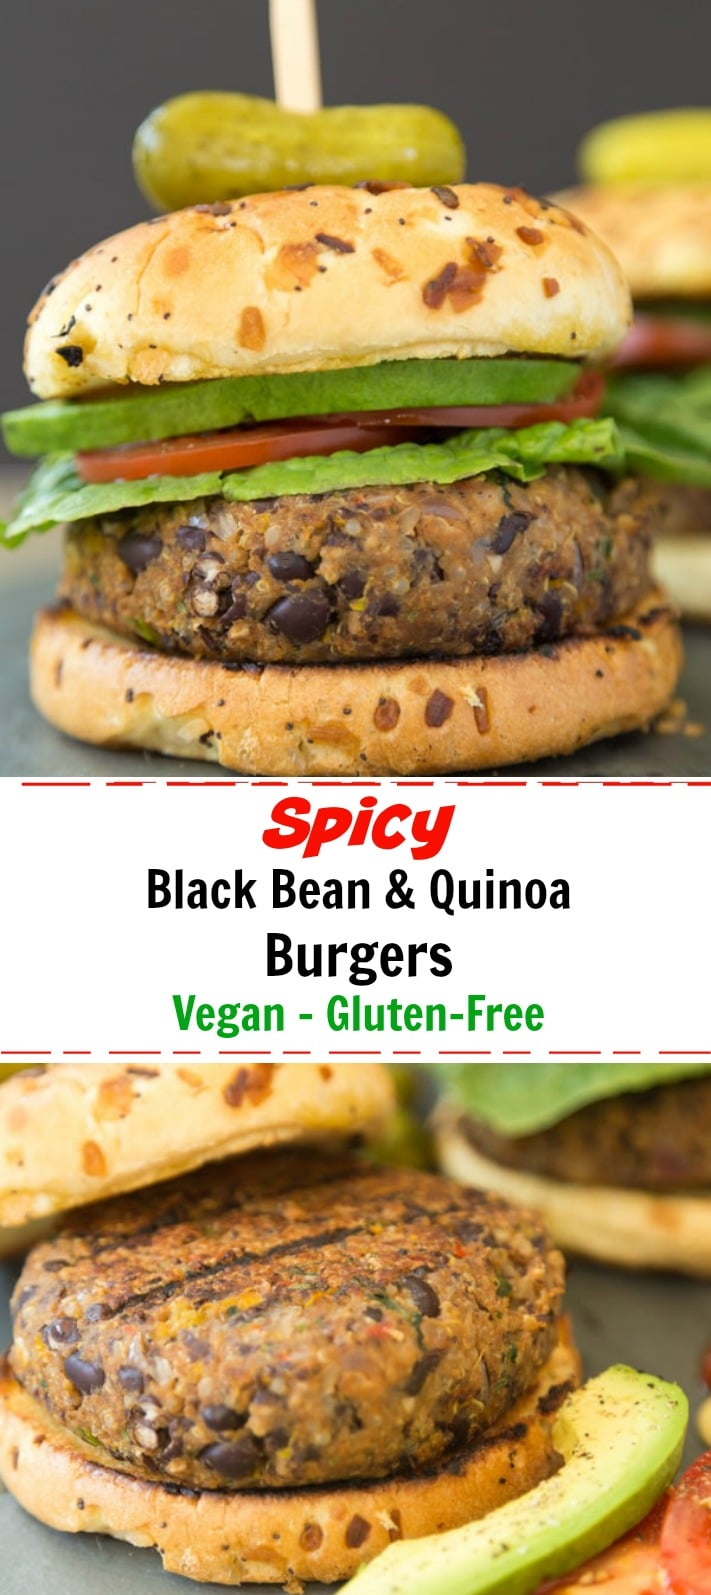 Spicy black bean burgers with quinoa and veggies that don't fall apart on the grill! Perfect for summer grilling season. #vegan #burger #black bean # quinoa